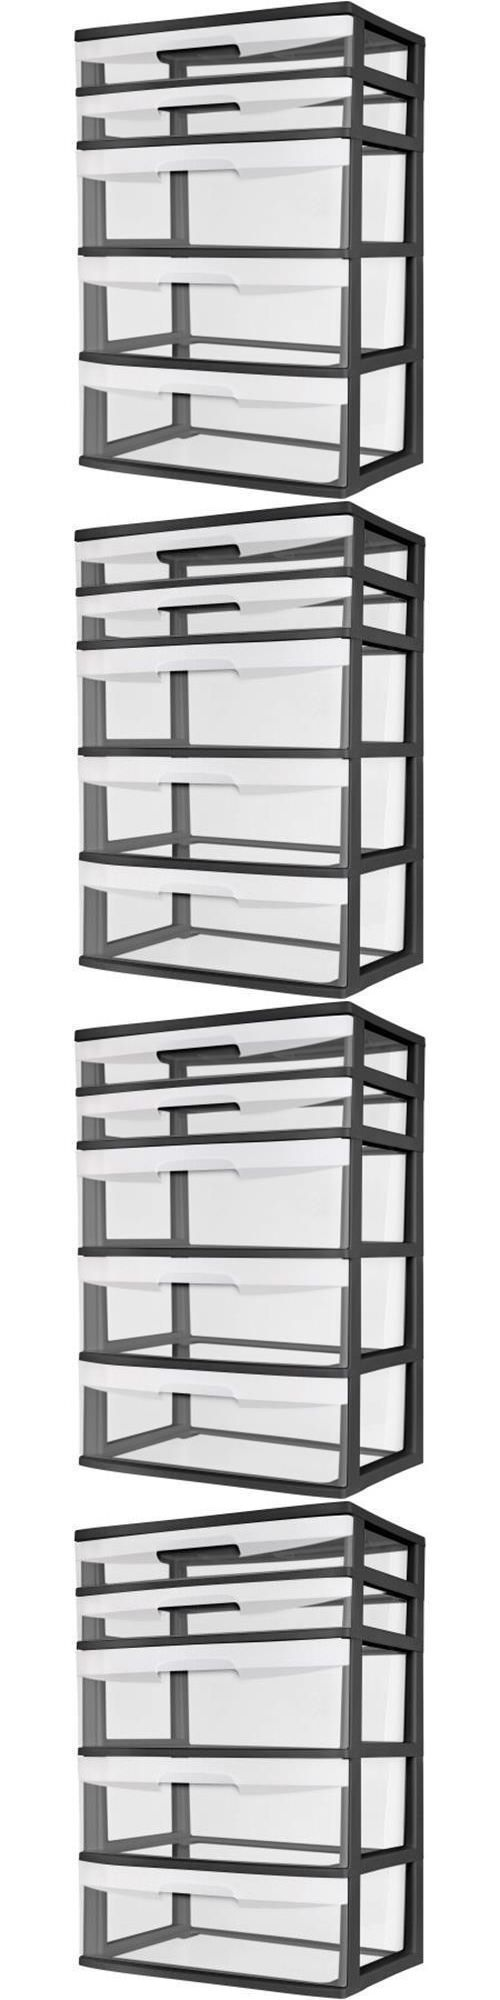 White tilt out clothes storage basket bin bathroom drawer ebay - Storage Boxes 159897 5 Drawer Wide Tower Storage Sterilite Organizer Cabinet Heavy Plastic New